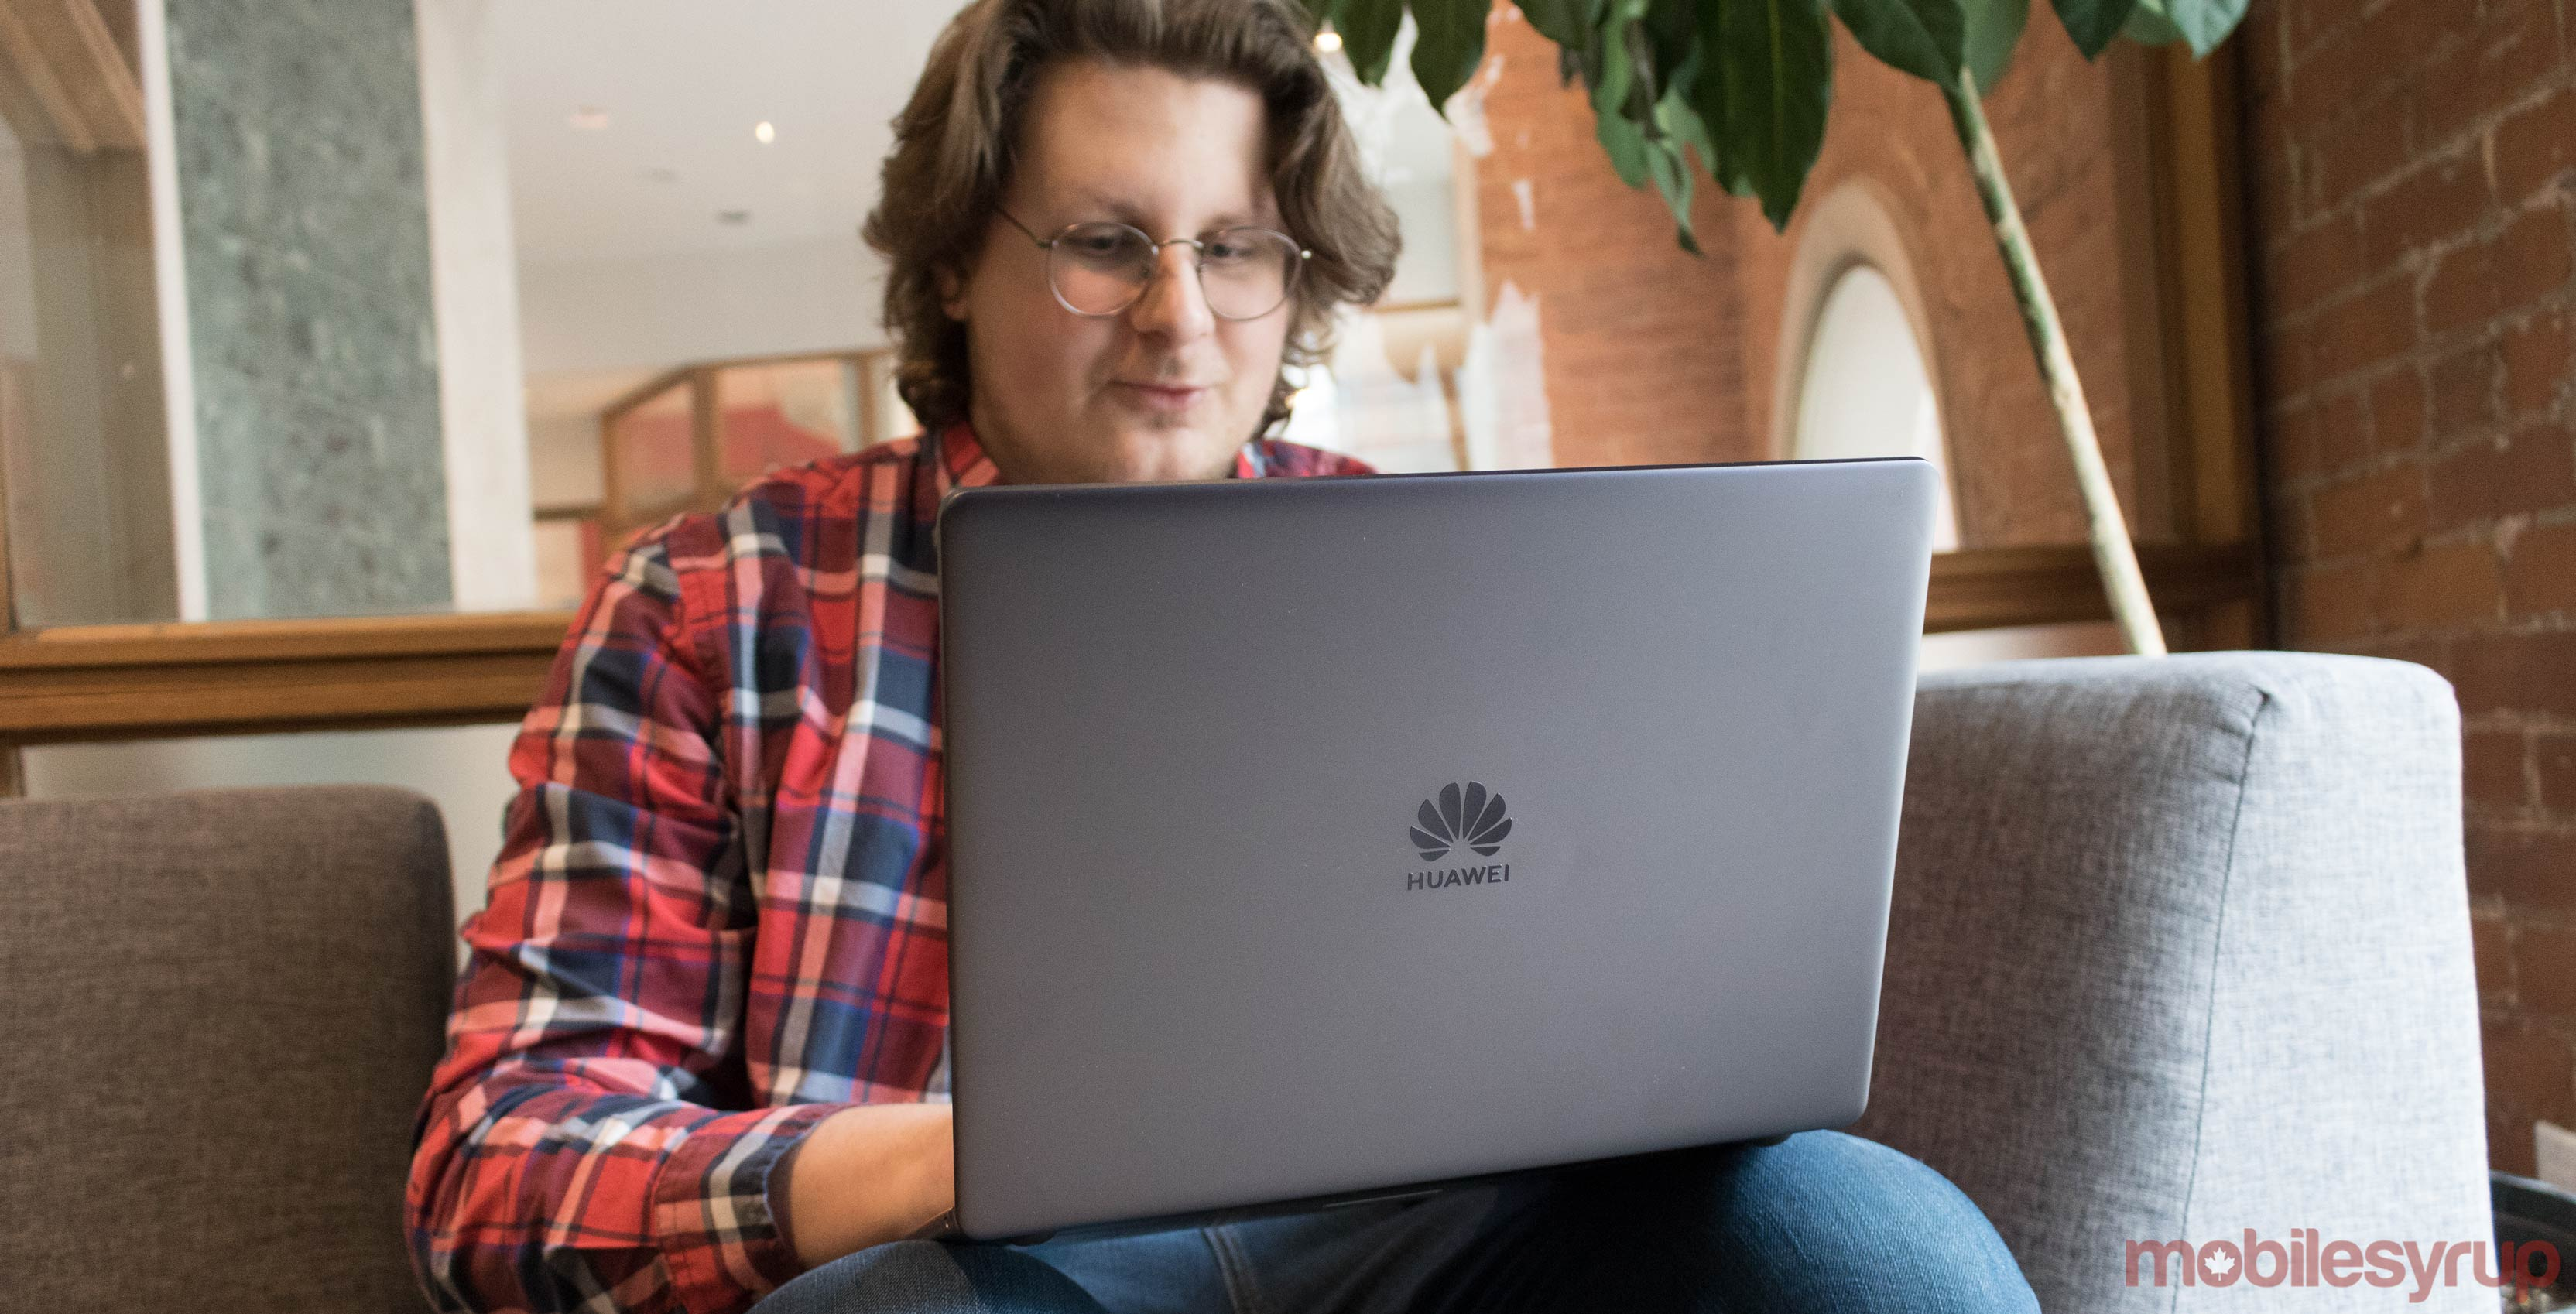 Huawei's MateBook 13 is solid, but it's not the MacBook it